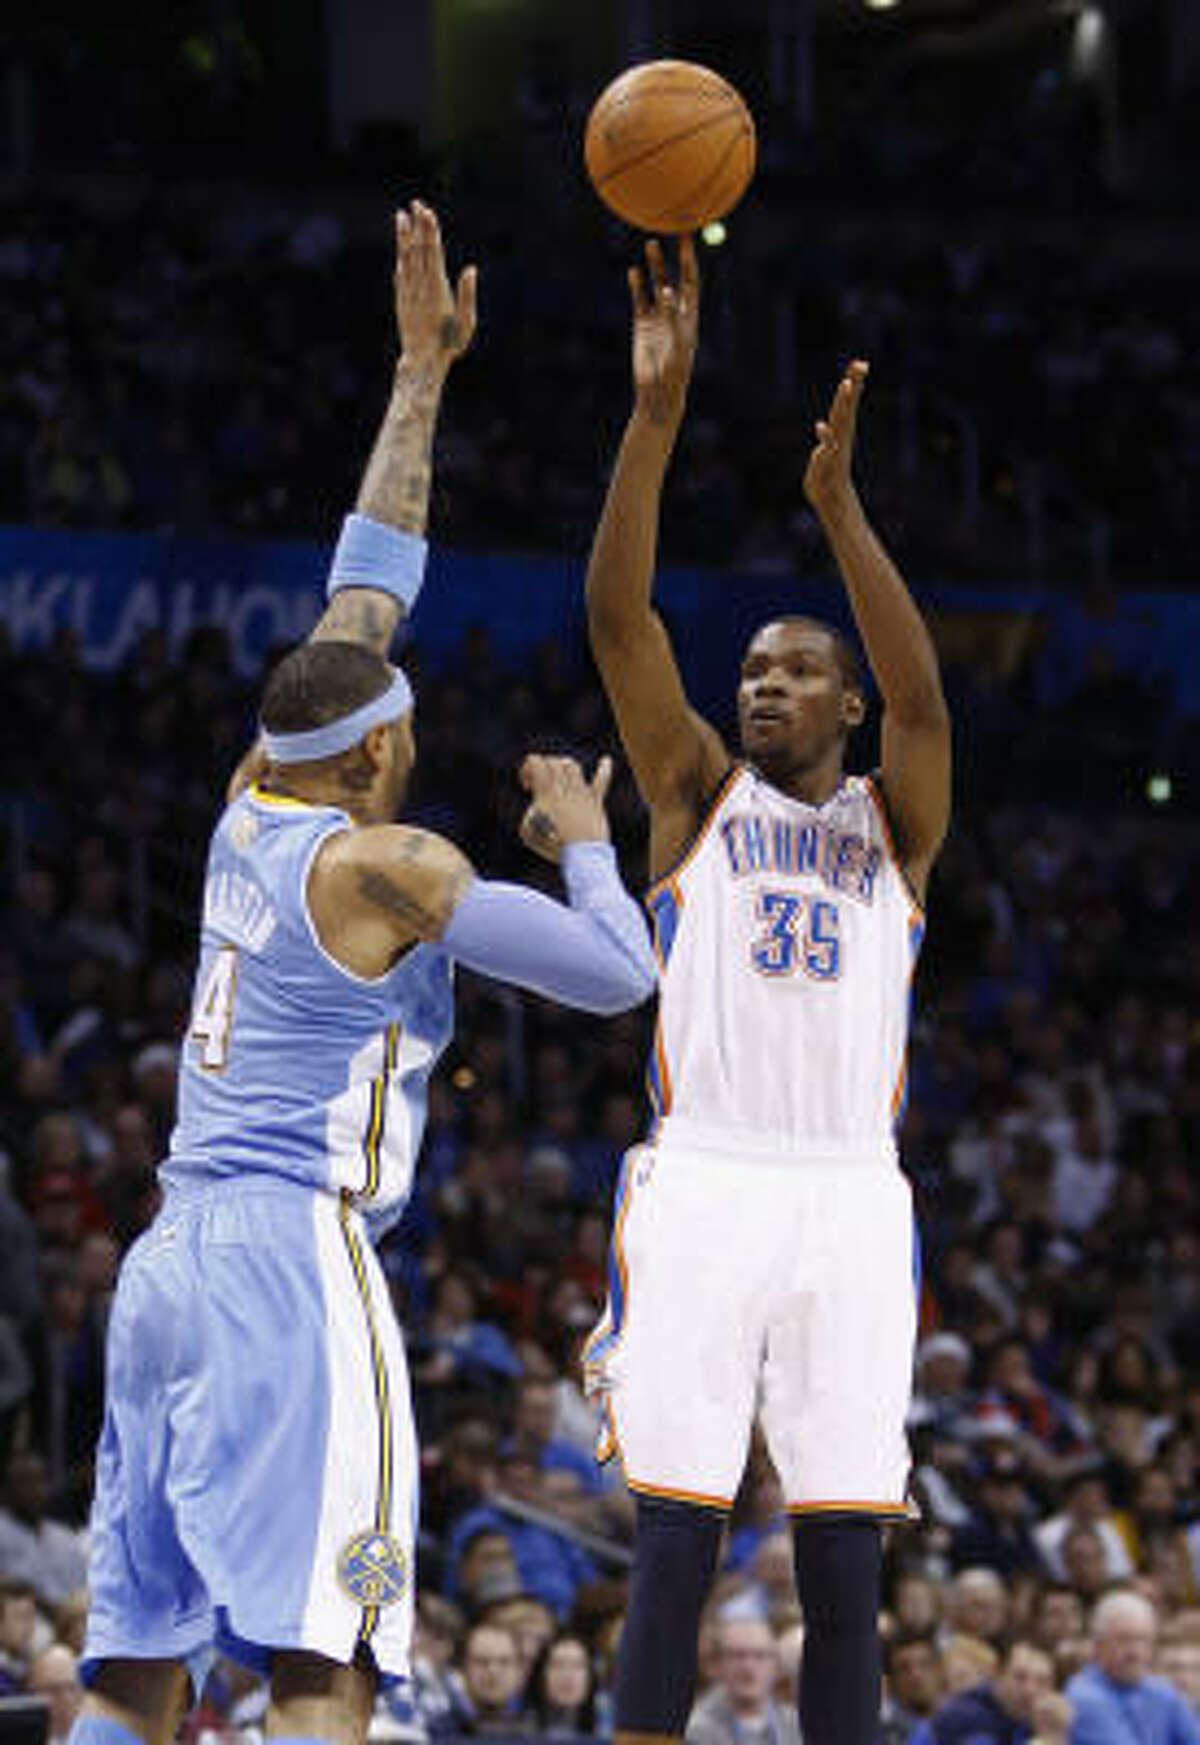 Oklahoma City Thunder forward Kevin Durant (35) poured in 44 points on 14 of 20 shooting on Saturday night.